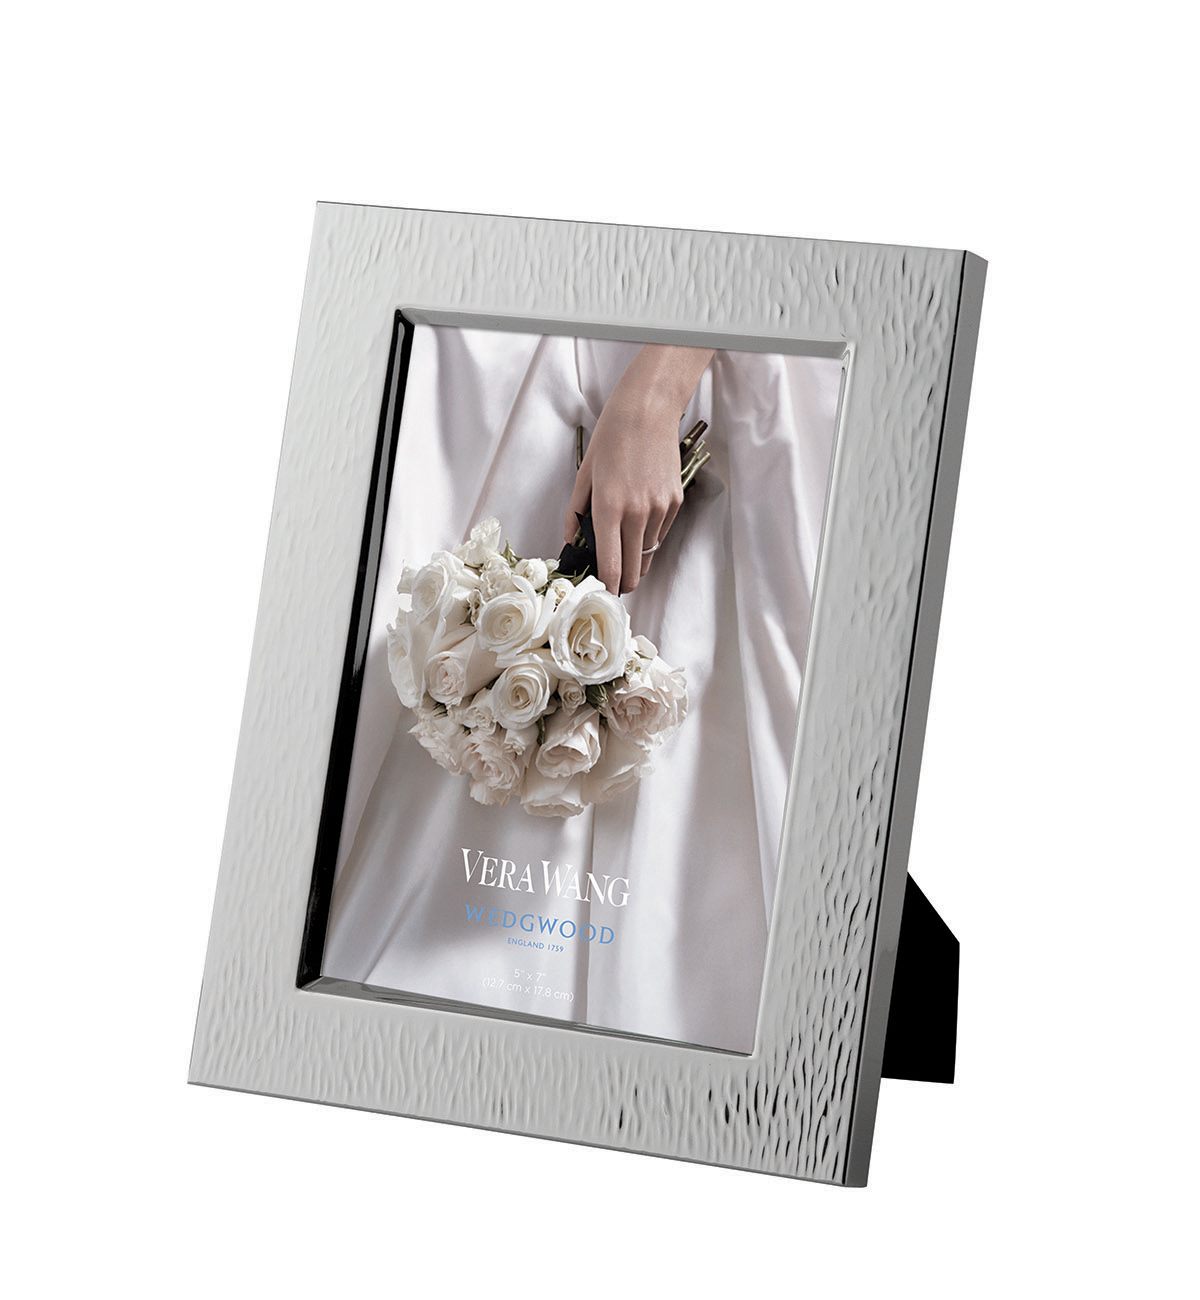 Vera Wang Hammered 5x7 Frame by Wedgwood